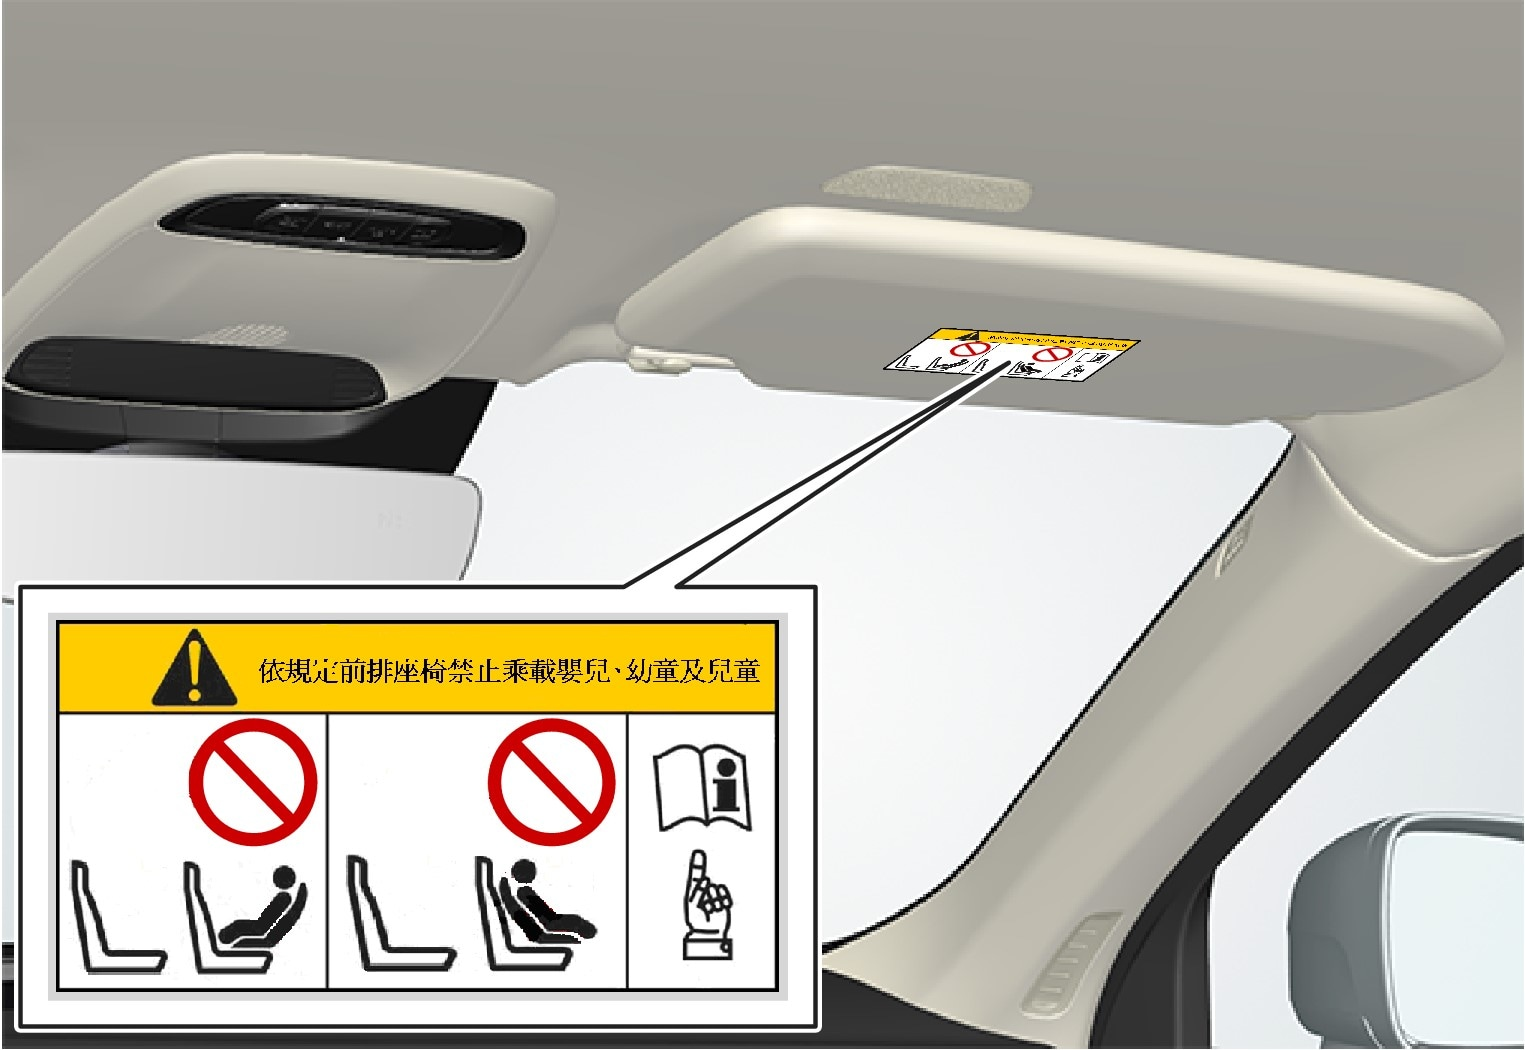 P5-1507–Safety–Child seat decal placement Taiwan